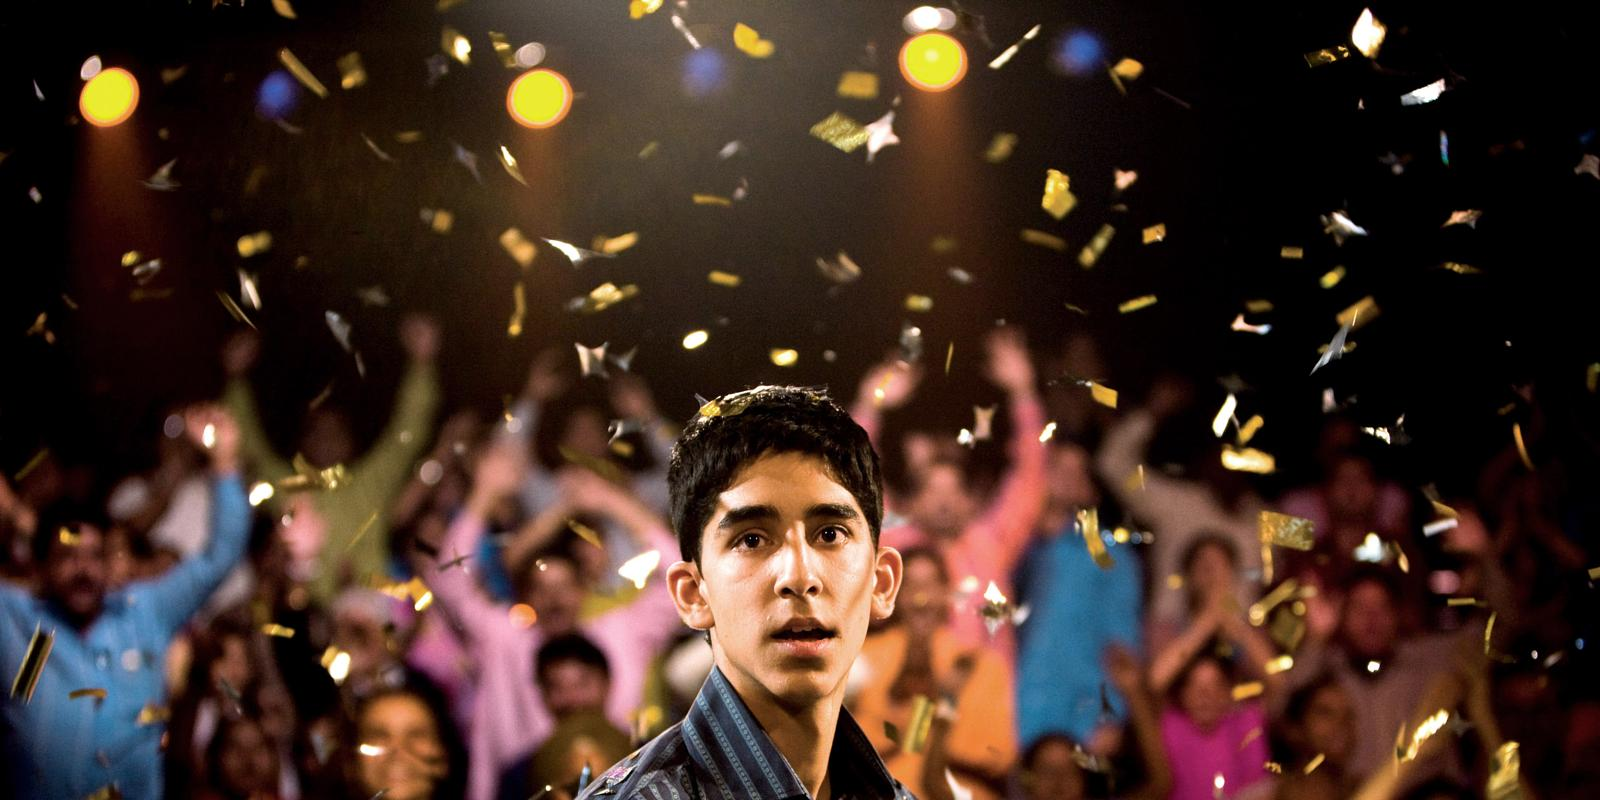 slumdog millionaire film analysis essay Slumdog millionaire essay notes - leave behind those sleepless nights writing   related post of   bishop hatto analysis essay vocab  chart  the book with our custom related post of the film slumdog millionaire and .